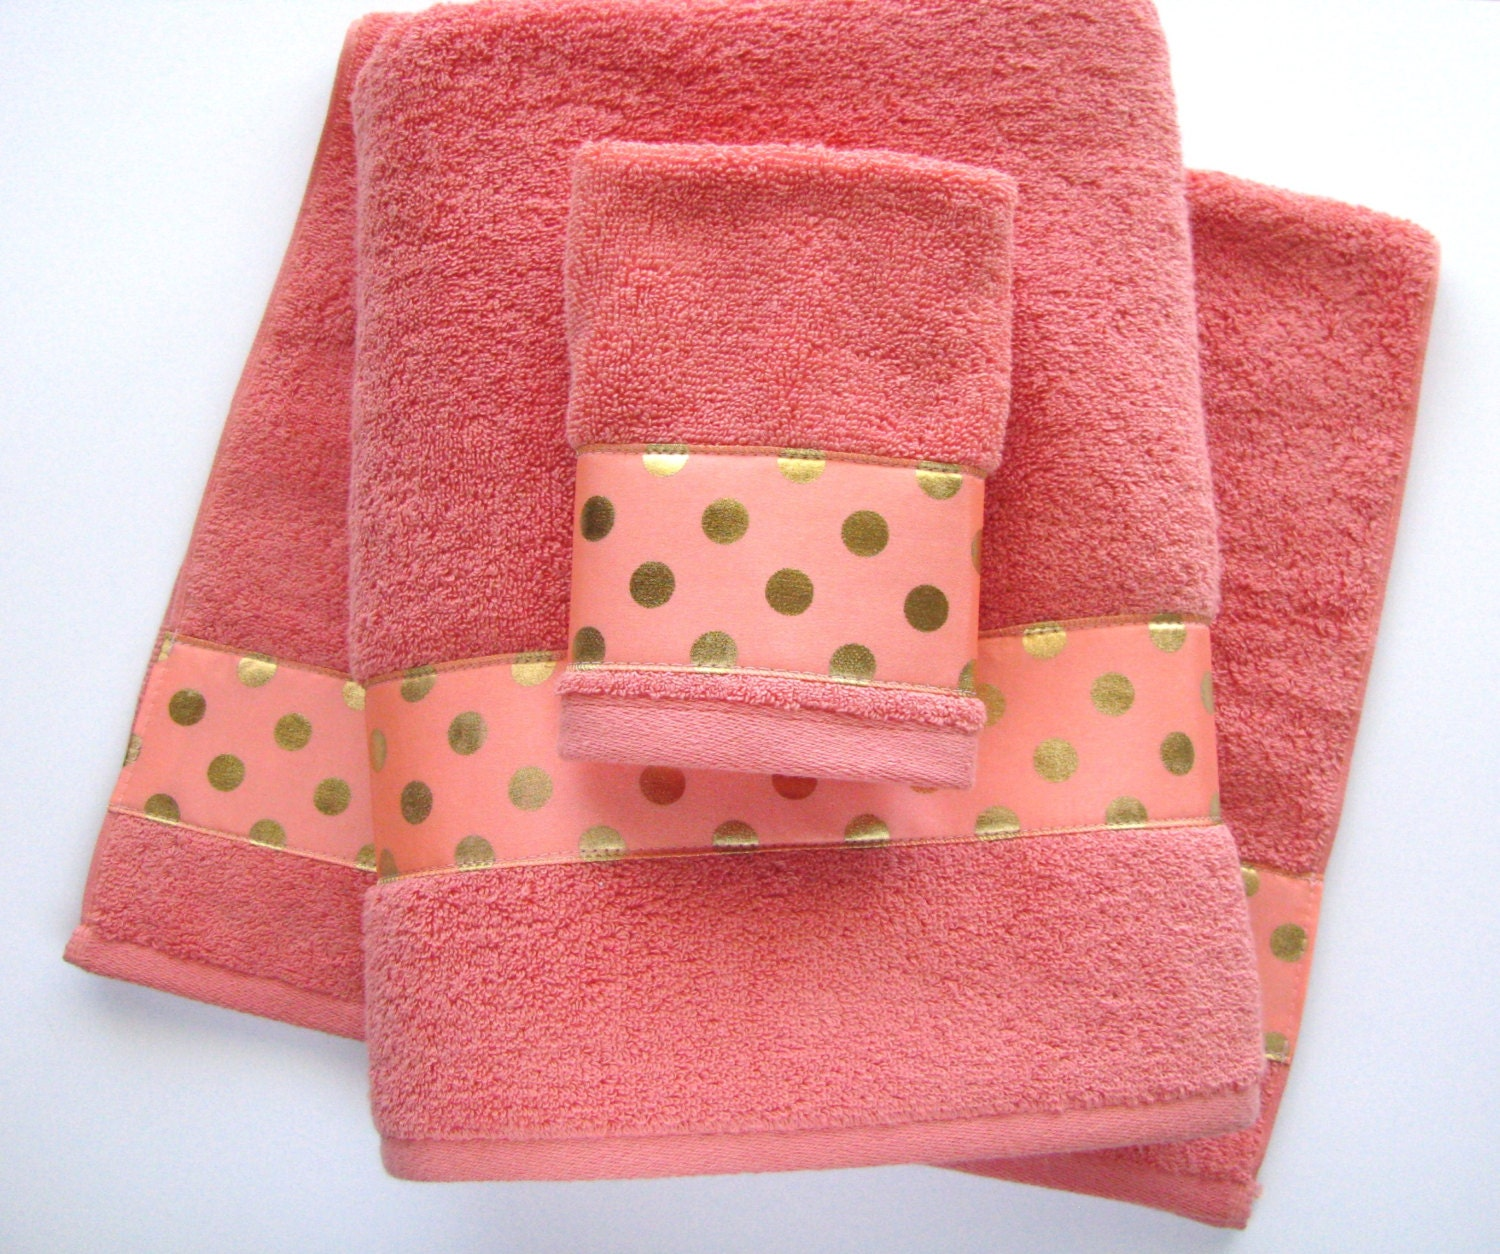 Coral Gold Towels Hand Towels Bath Towels Custom By AugustAve